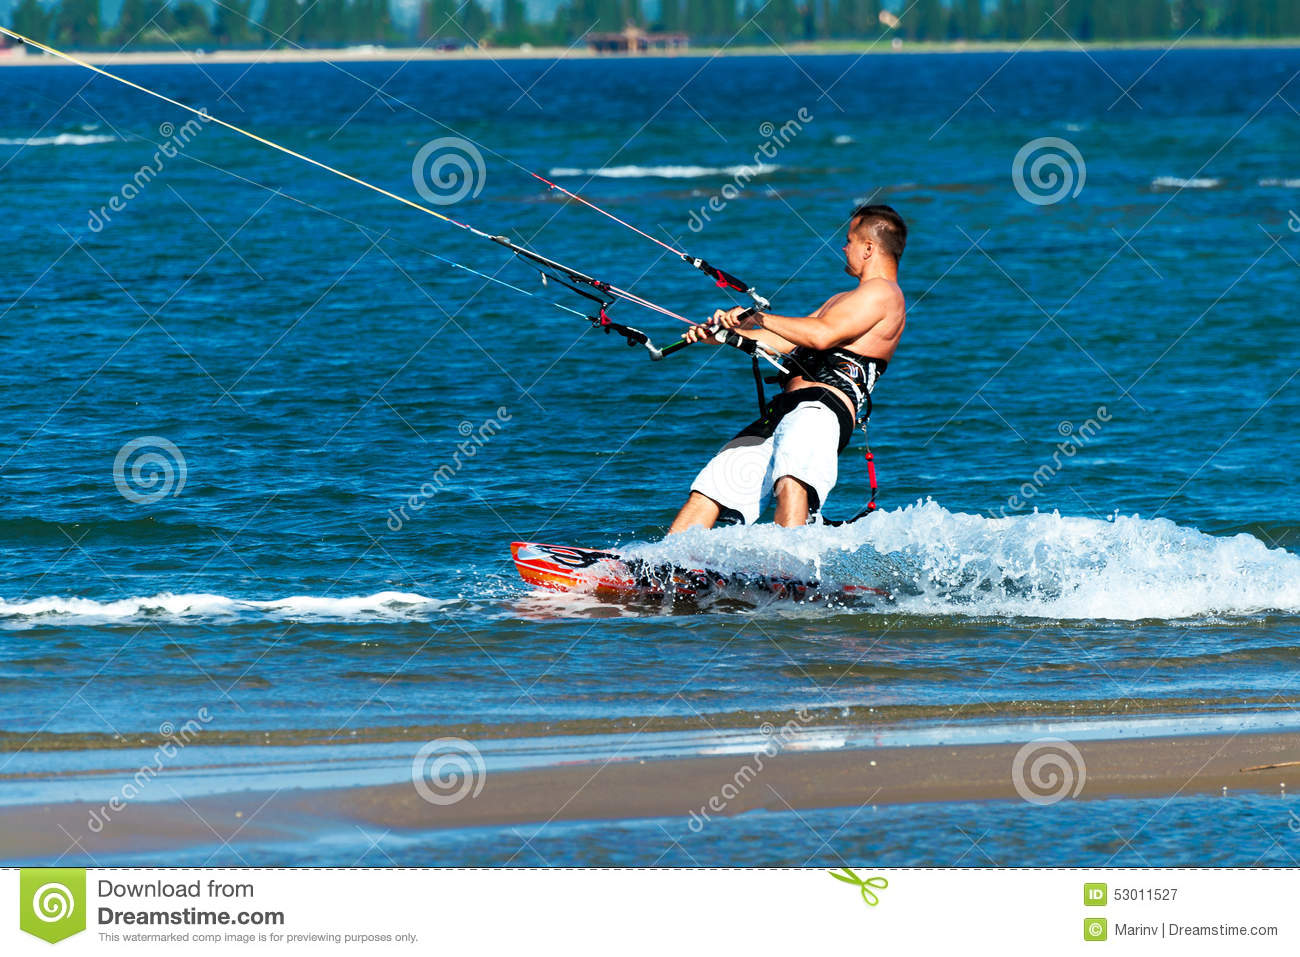 Kitesurfer rides on the surfboard and enjoys the sea